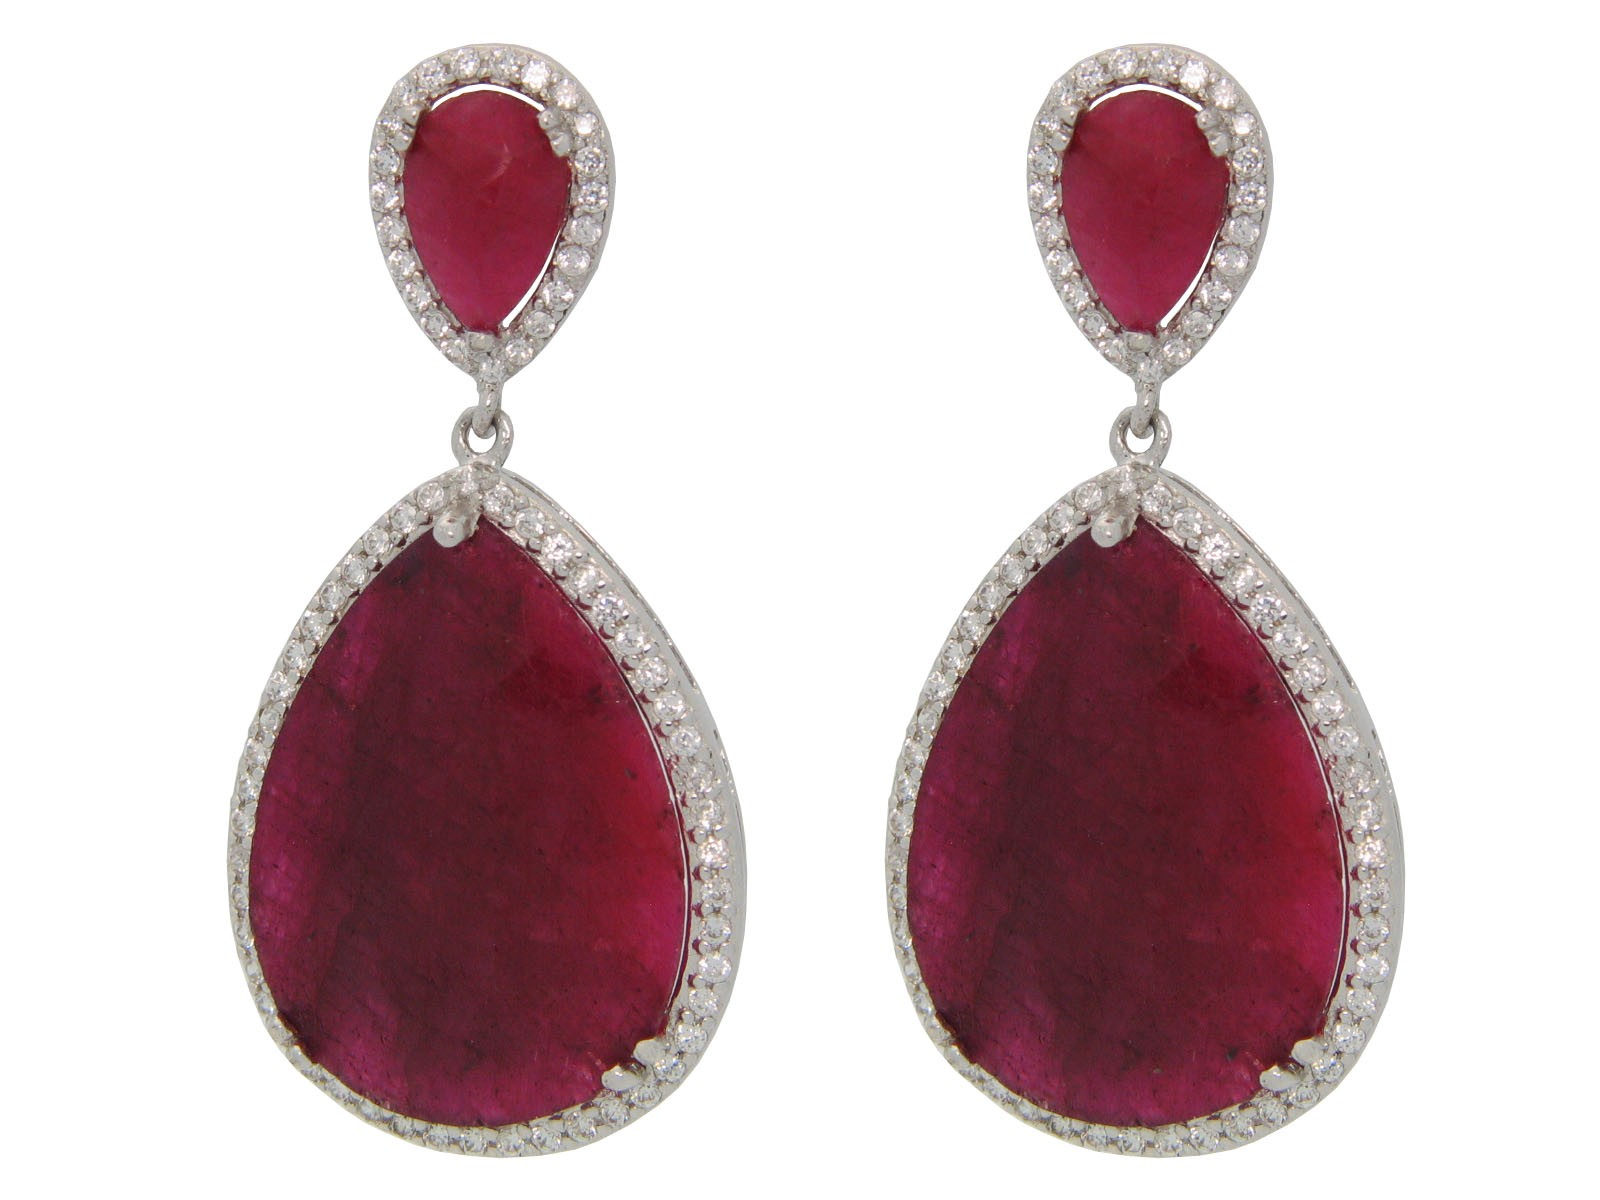 andaaz jewellery earrings products jewelers floral ruby